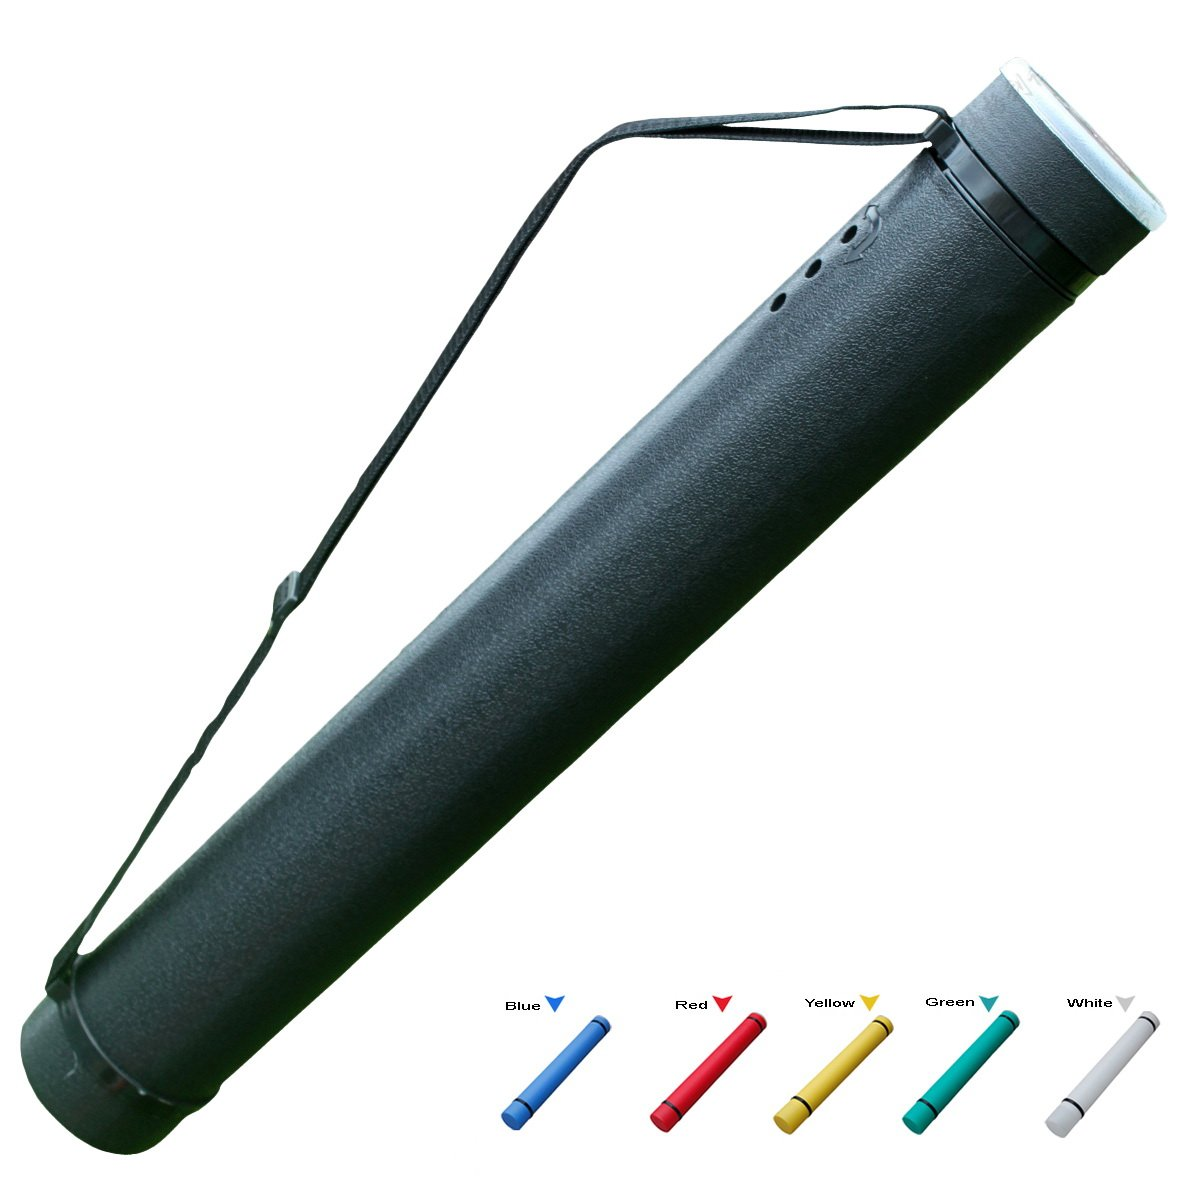 MailingArt Expanding Document Poster Tube 24.8 Inches up to 40 Inches - 3.5'' Diameter Water Light Resistant - Telescoping Posters, Artwork Drawings by MailingArt (Image #2)